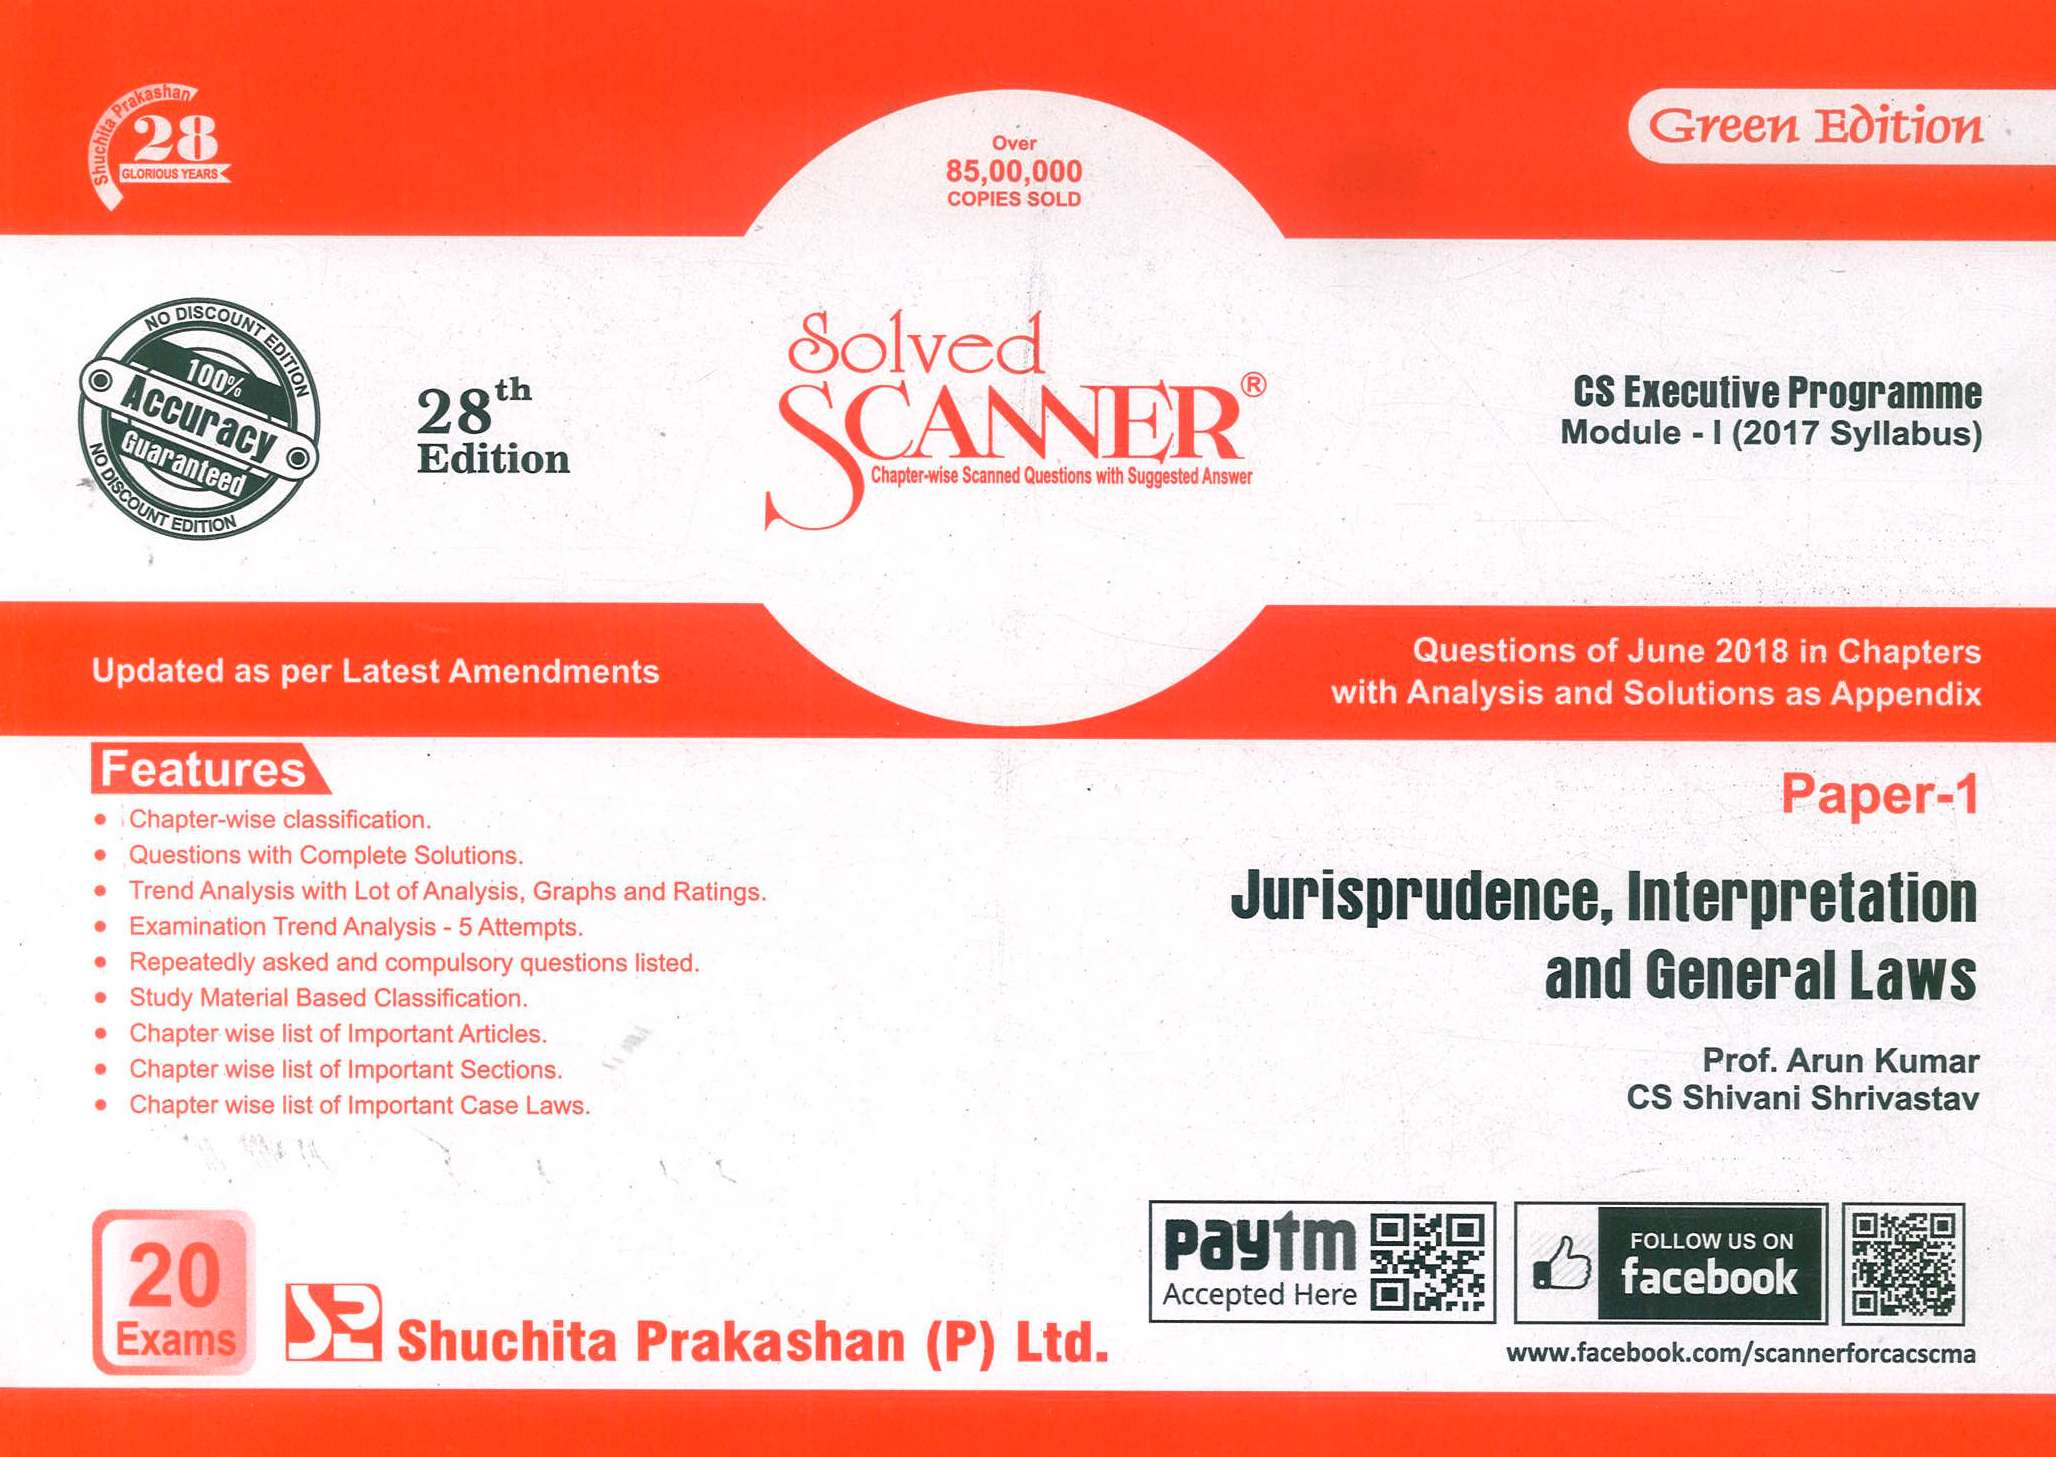 Shuchita Solved Scanner CS Executive Programme Module-I (2017 Syllabus) Paper-1 Jurisprudence, Interpretation and General Laws By Arun Kumar and CS Shivani Srivastava Applicable for December 2018 Exam